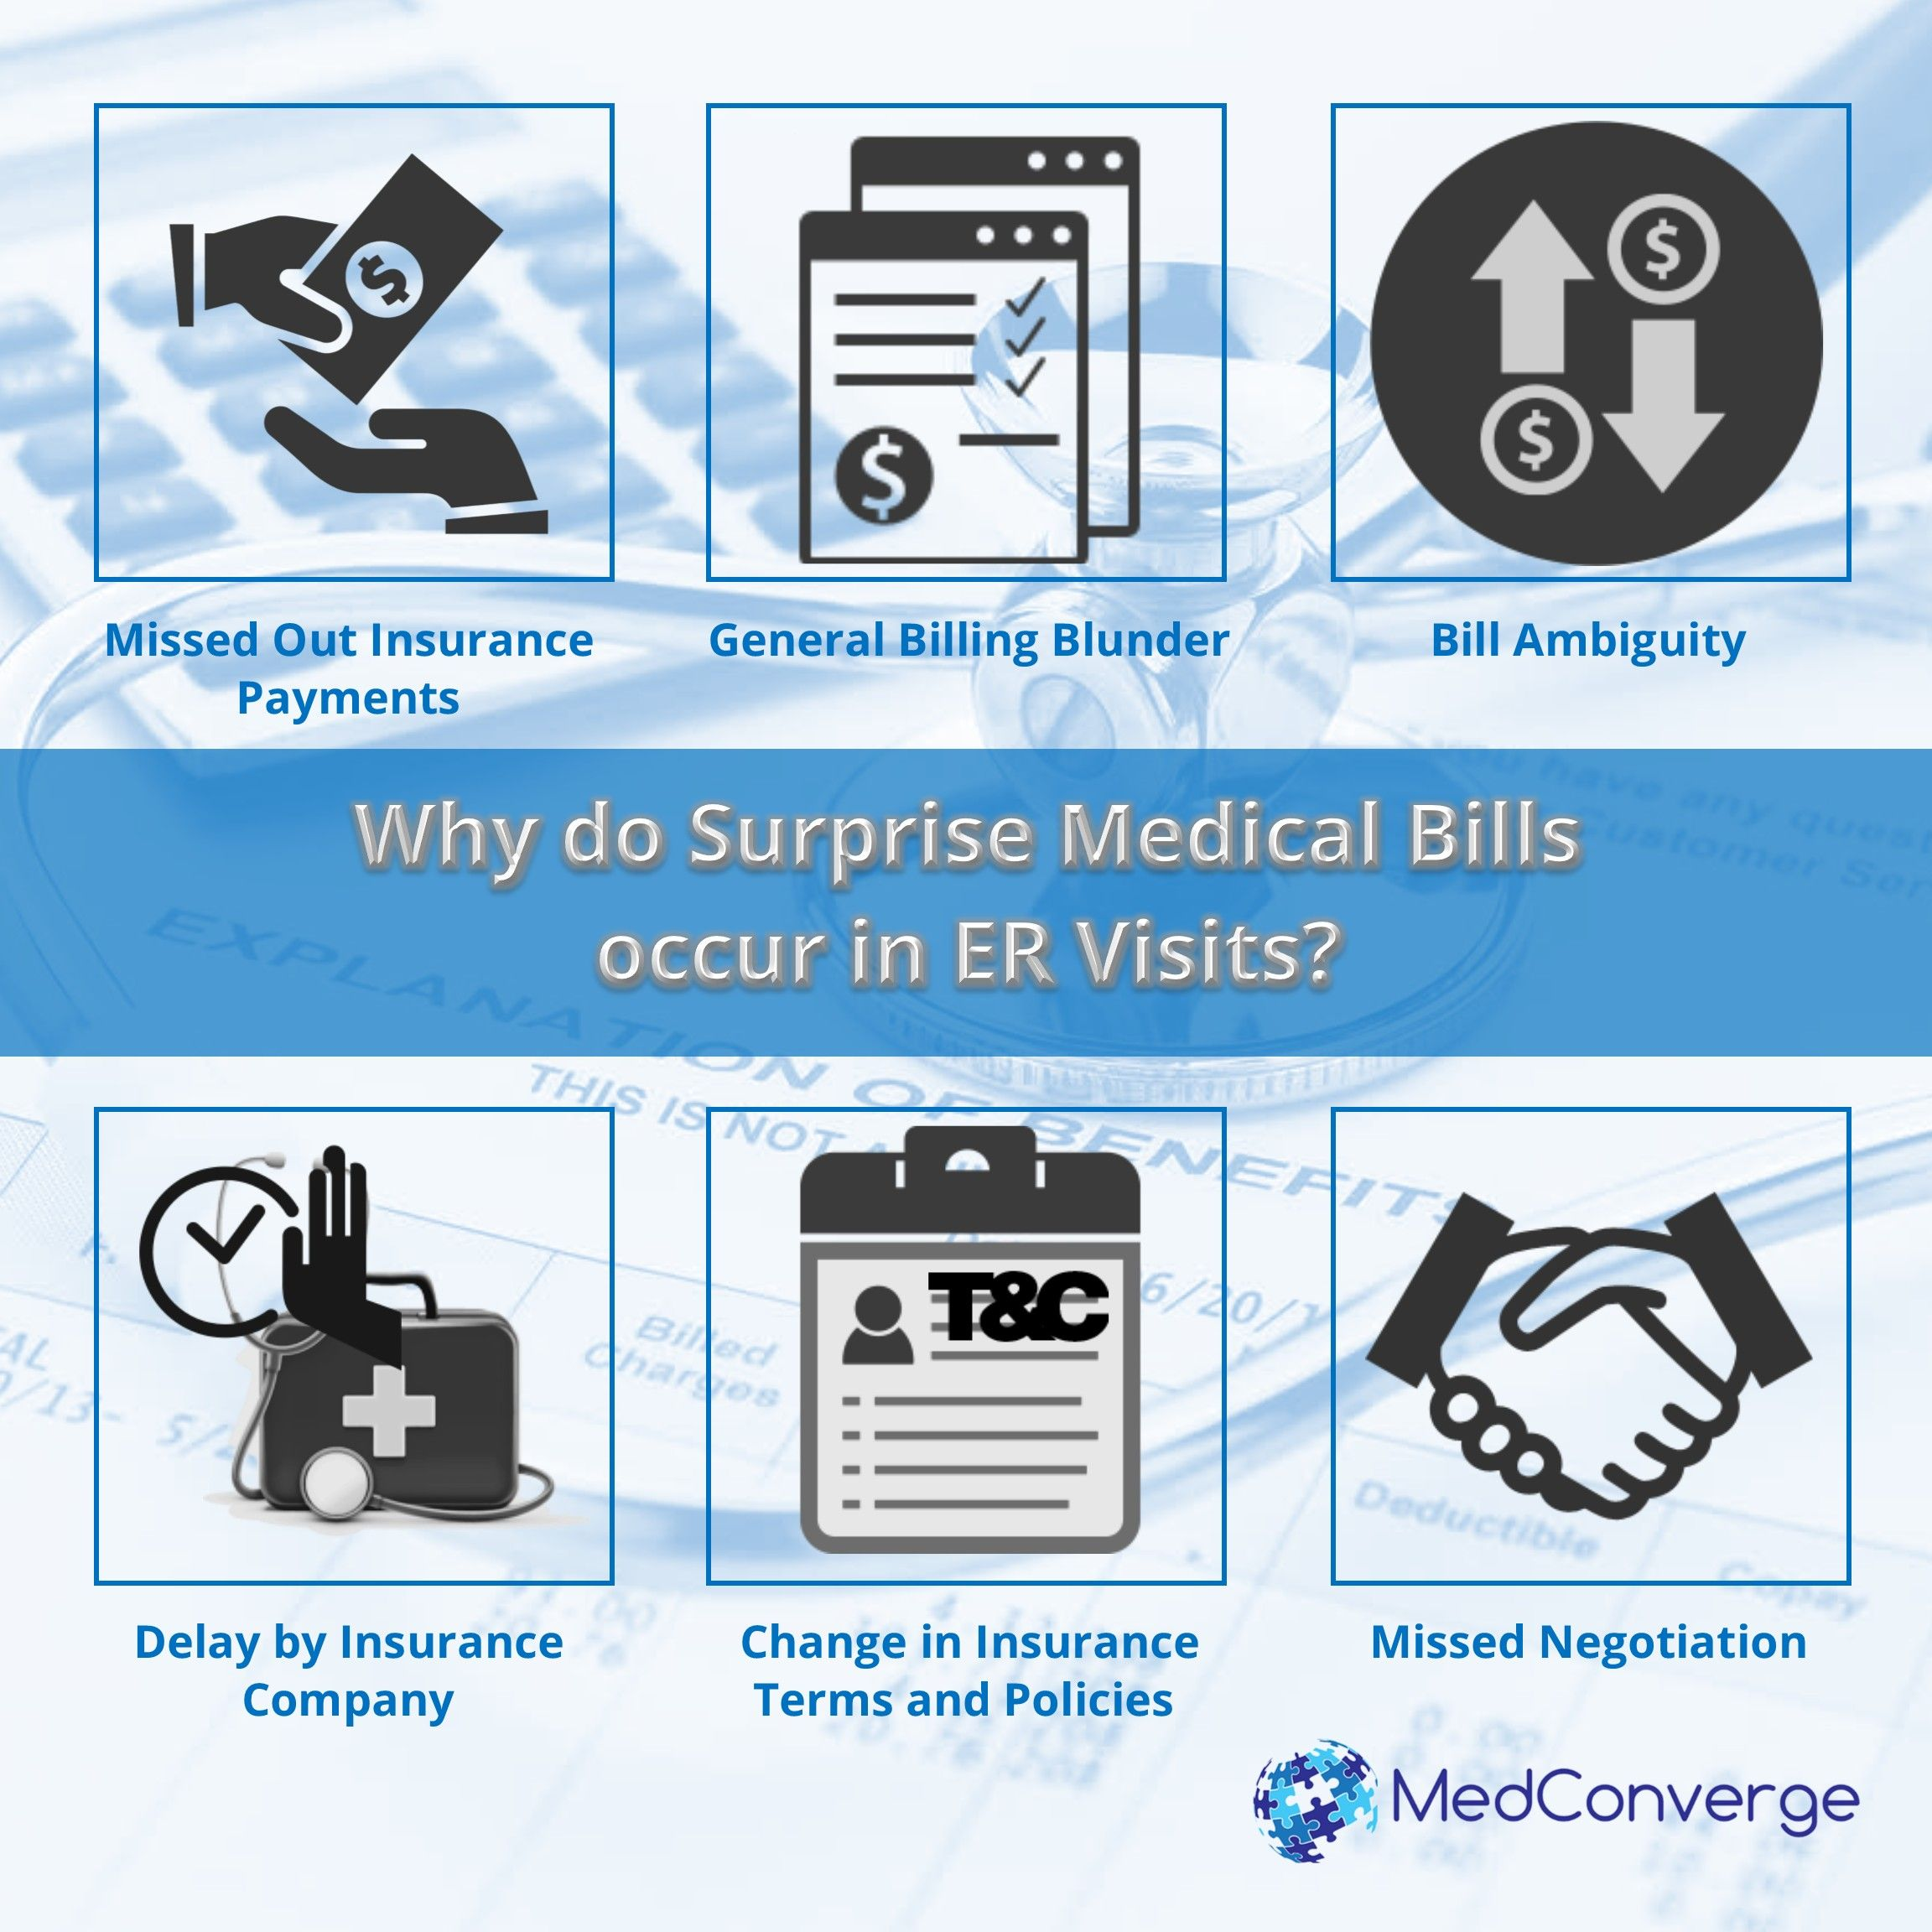 New England Journal Of Medicine 22 Of Surprise Medical Bills Occur In Er Visits Medical Billing Medical Medicine Journal